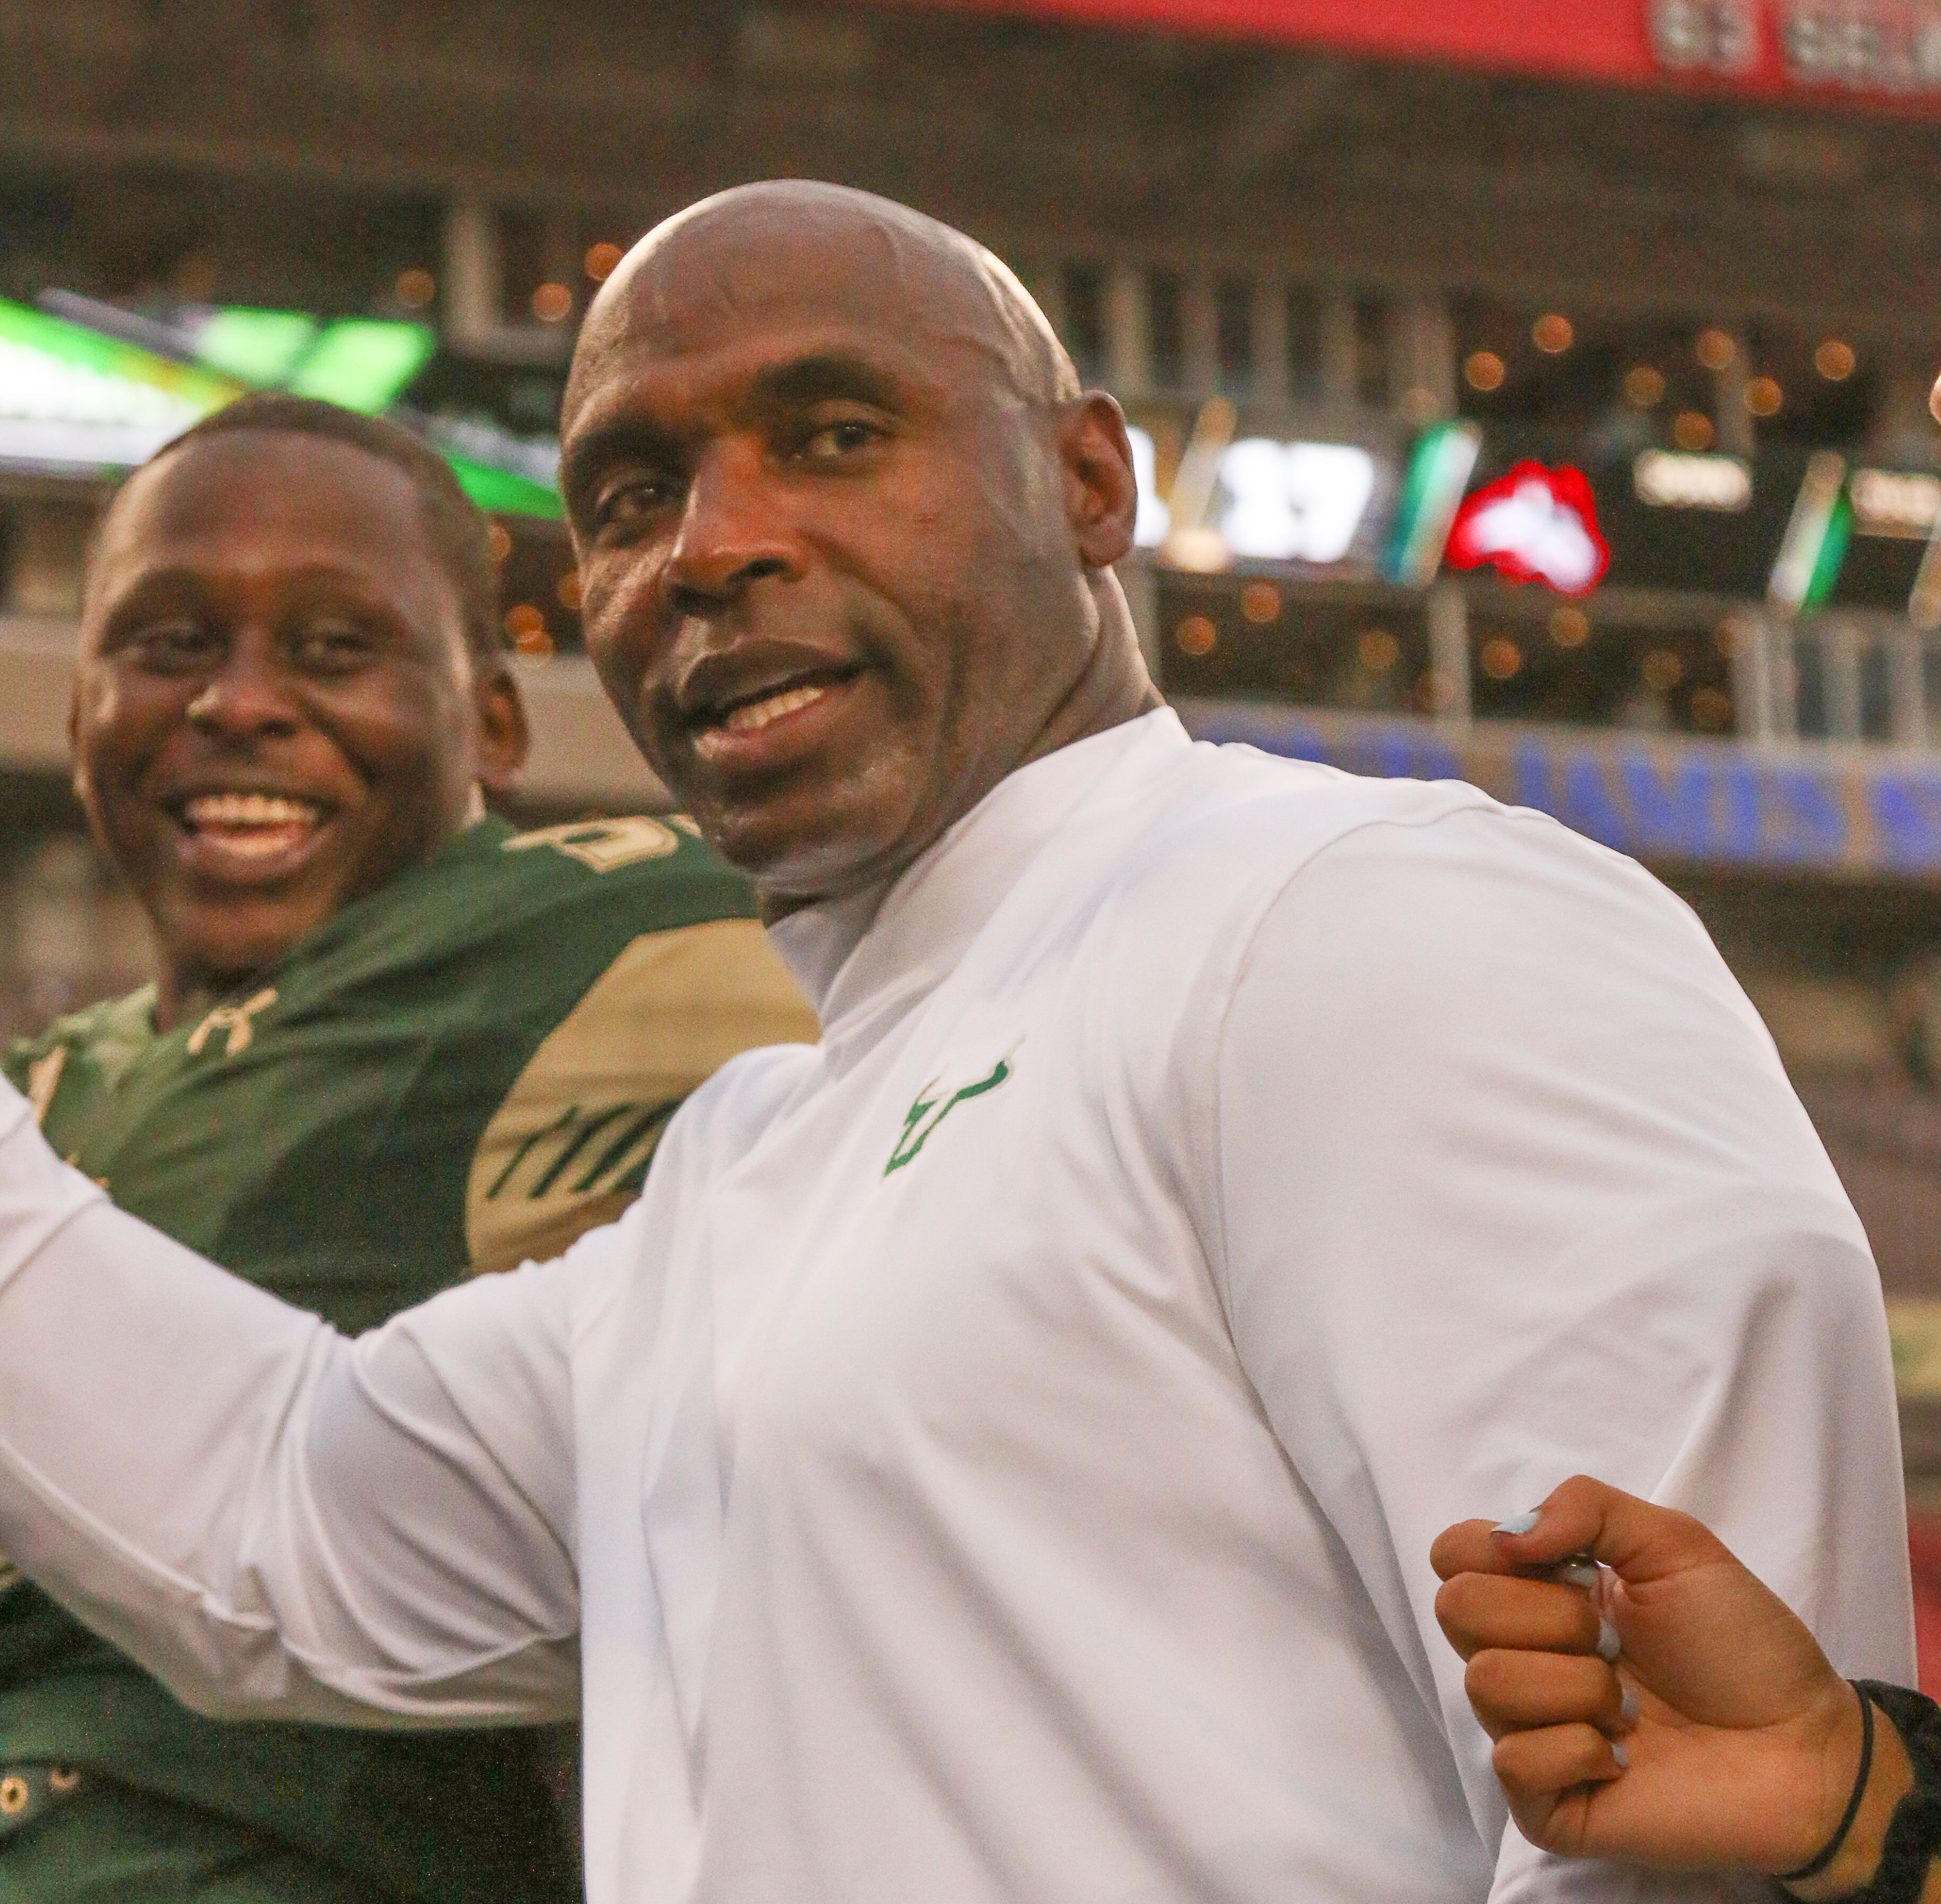 Charlie Strong hoped to get his team going earlier./JEFFREY S. KING